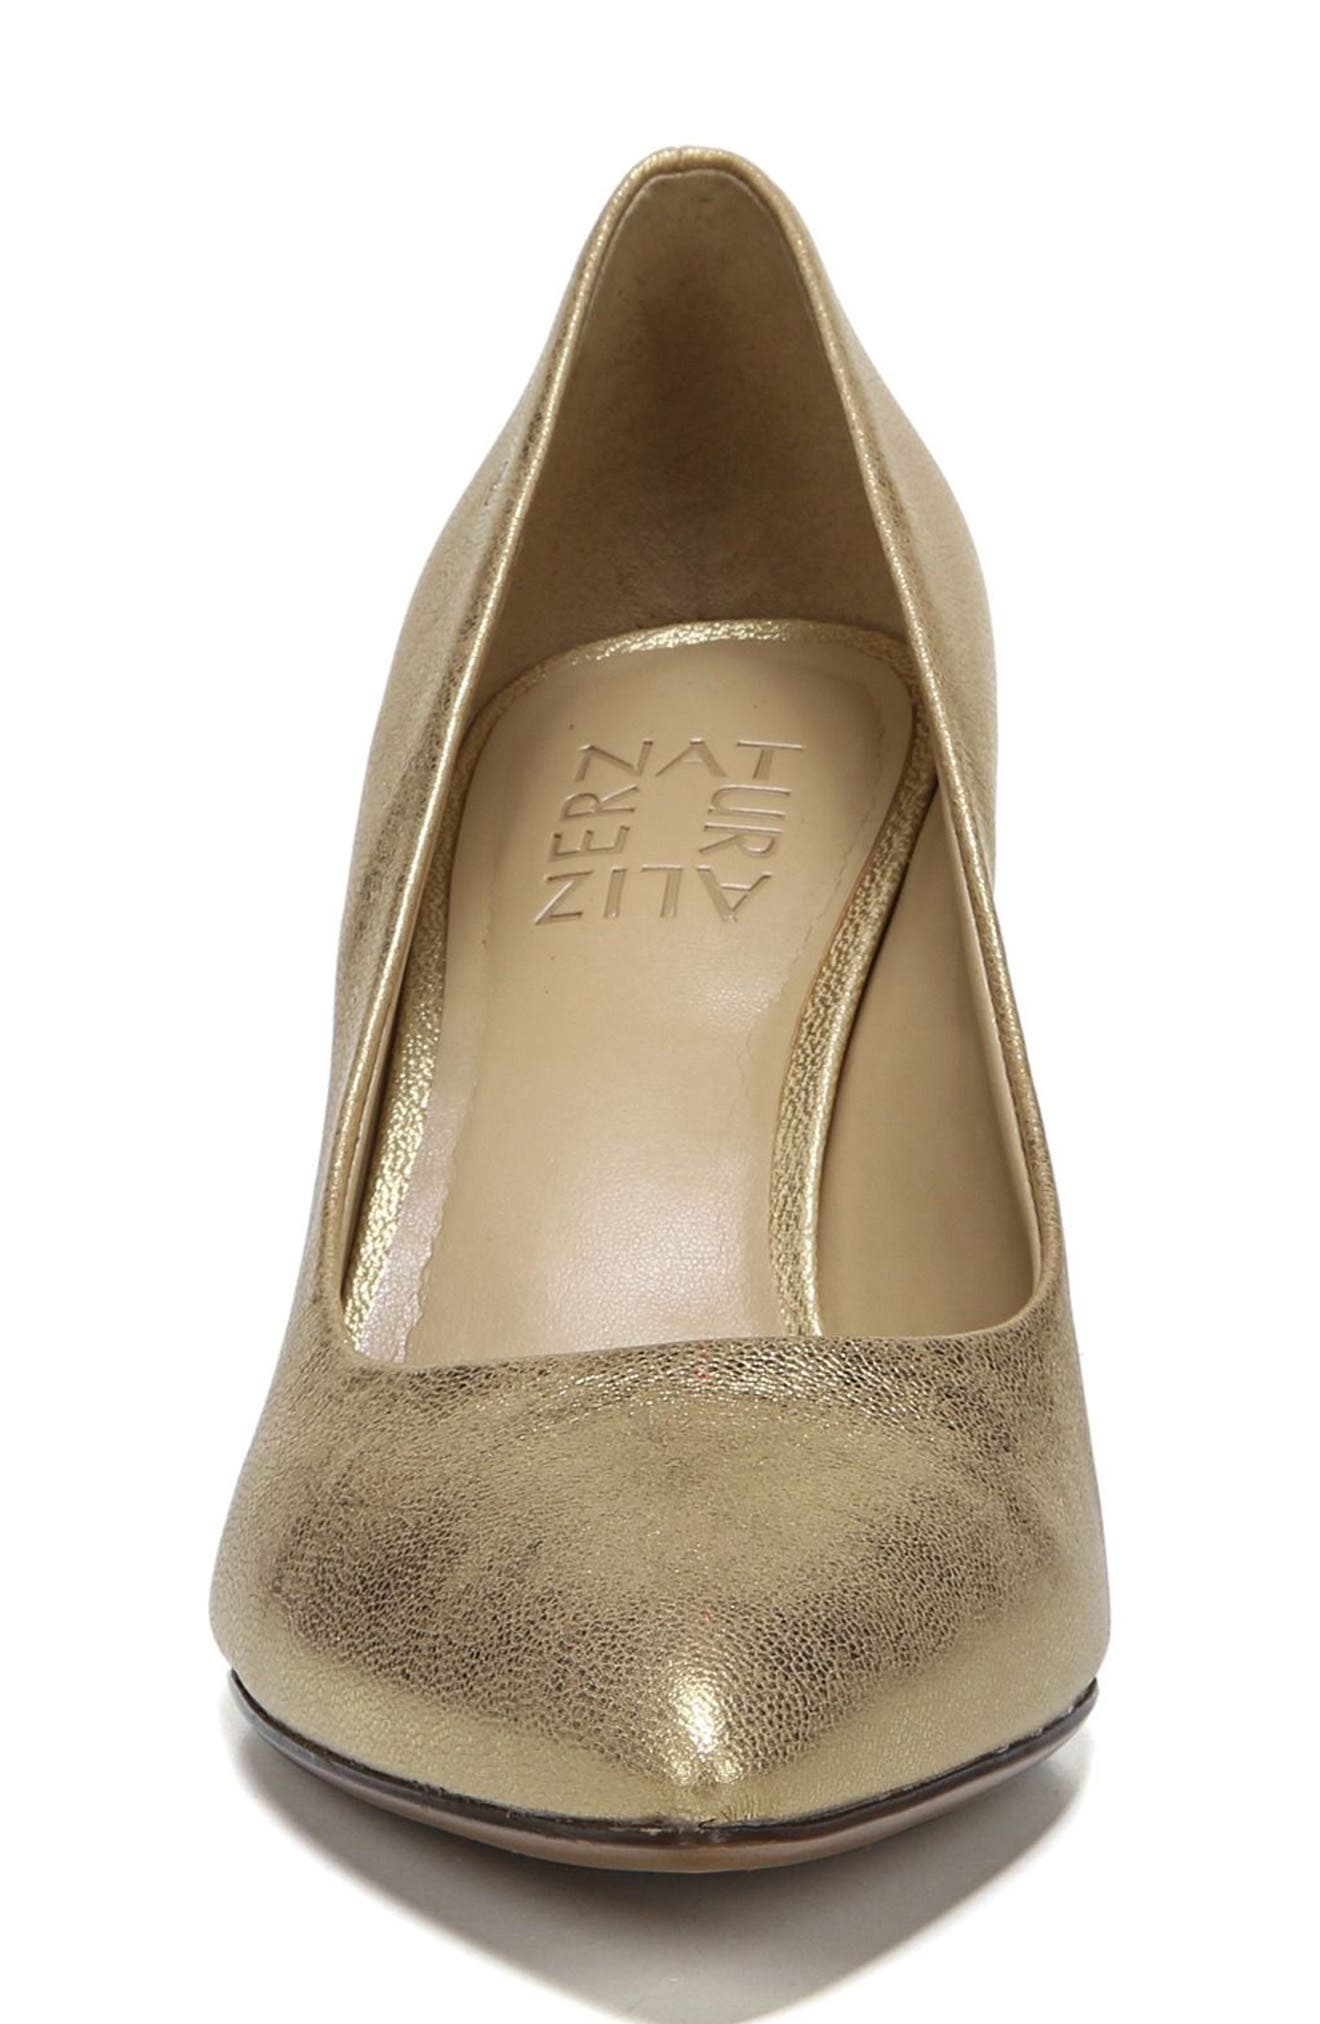 Natalie Pointy Toe Pump,                             Alternate thumbnail 4, color,                             GOLD LEATHER